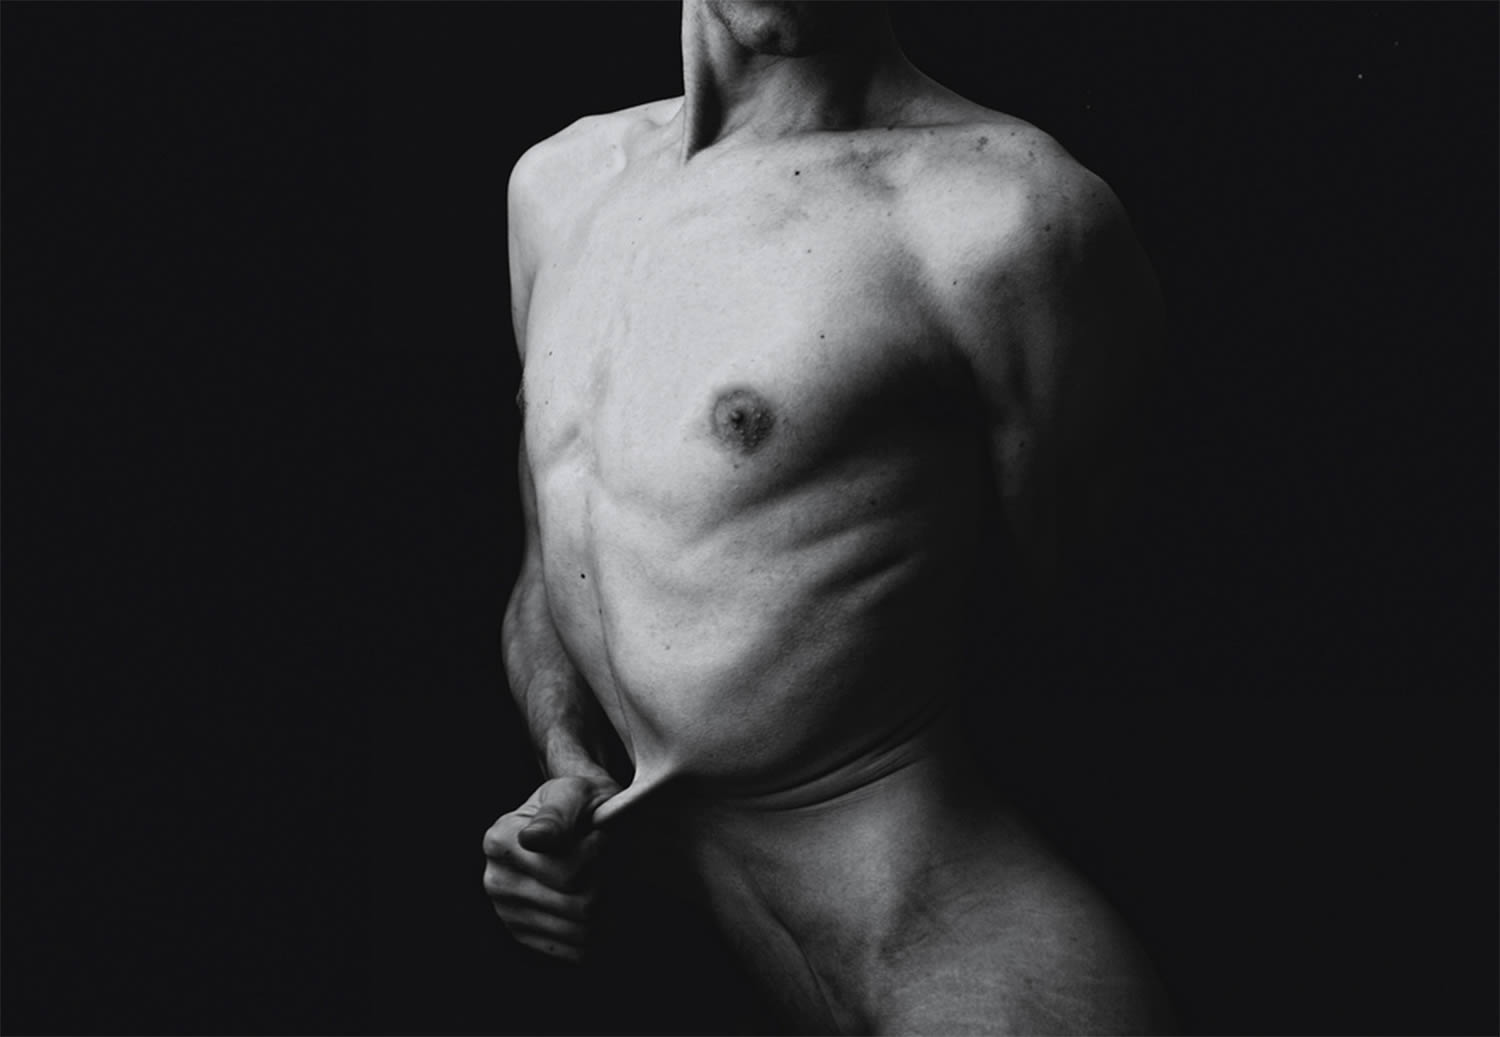 man pulling skin, photography